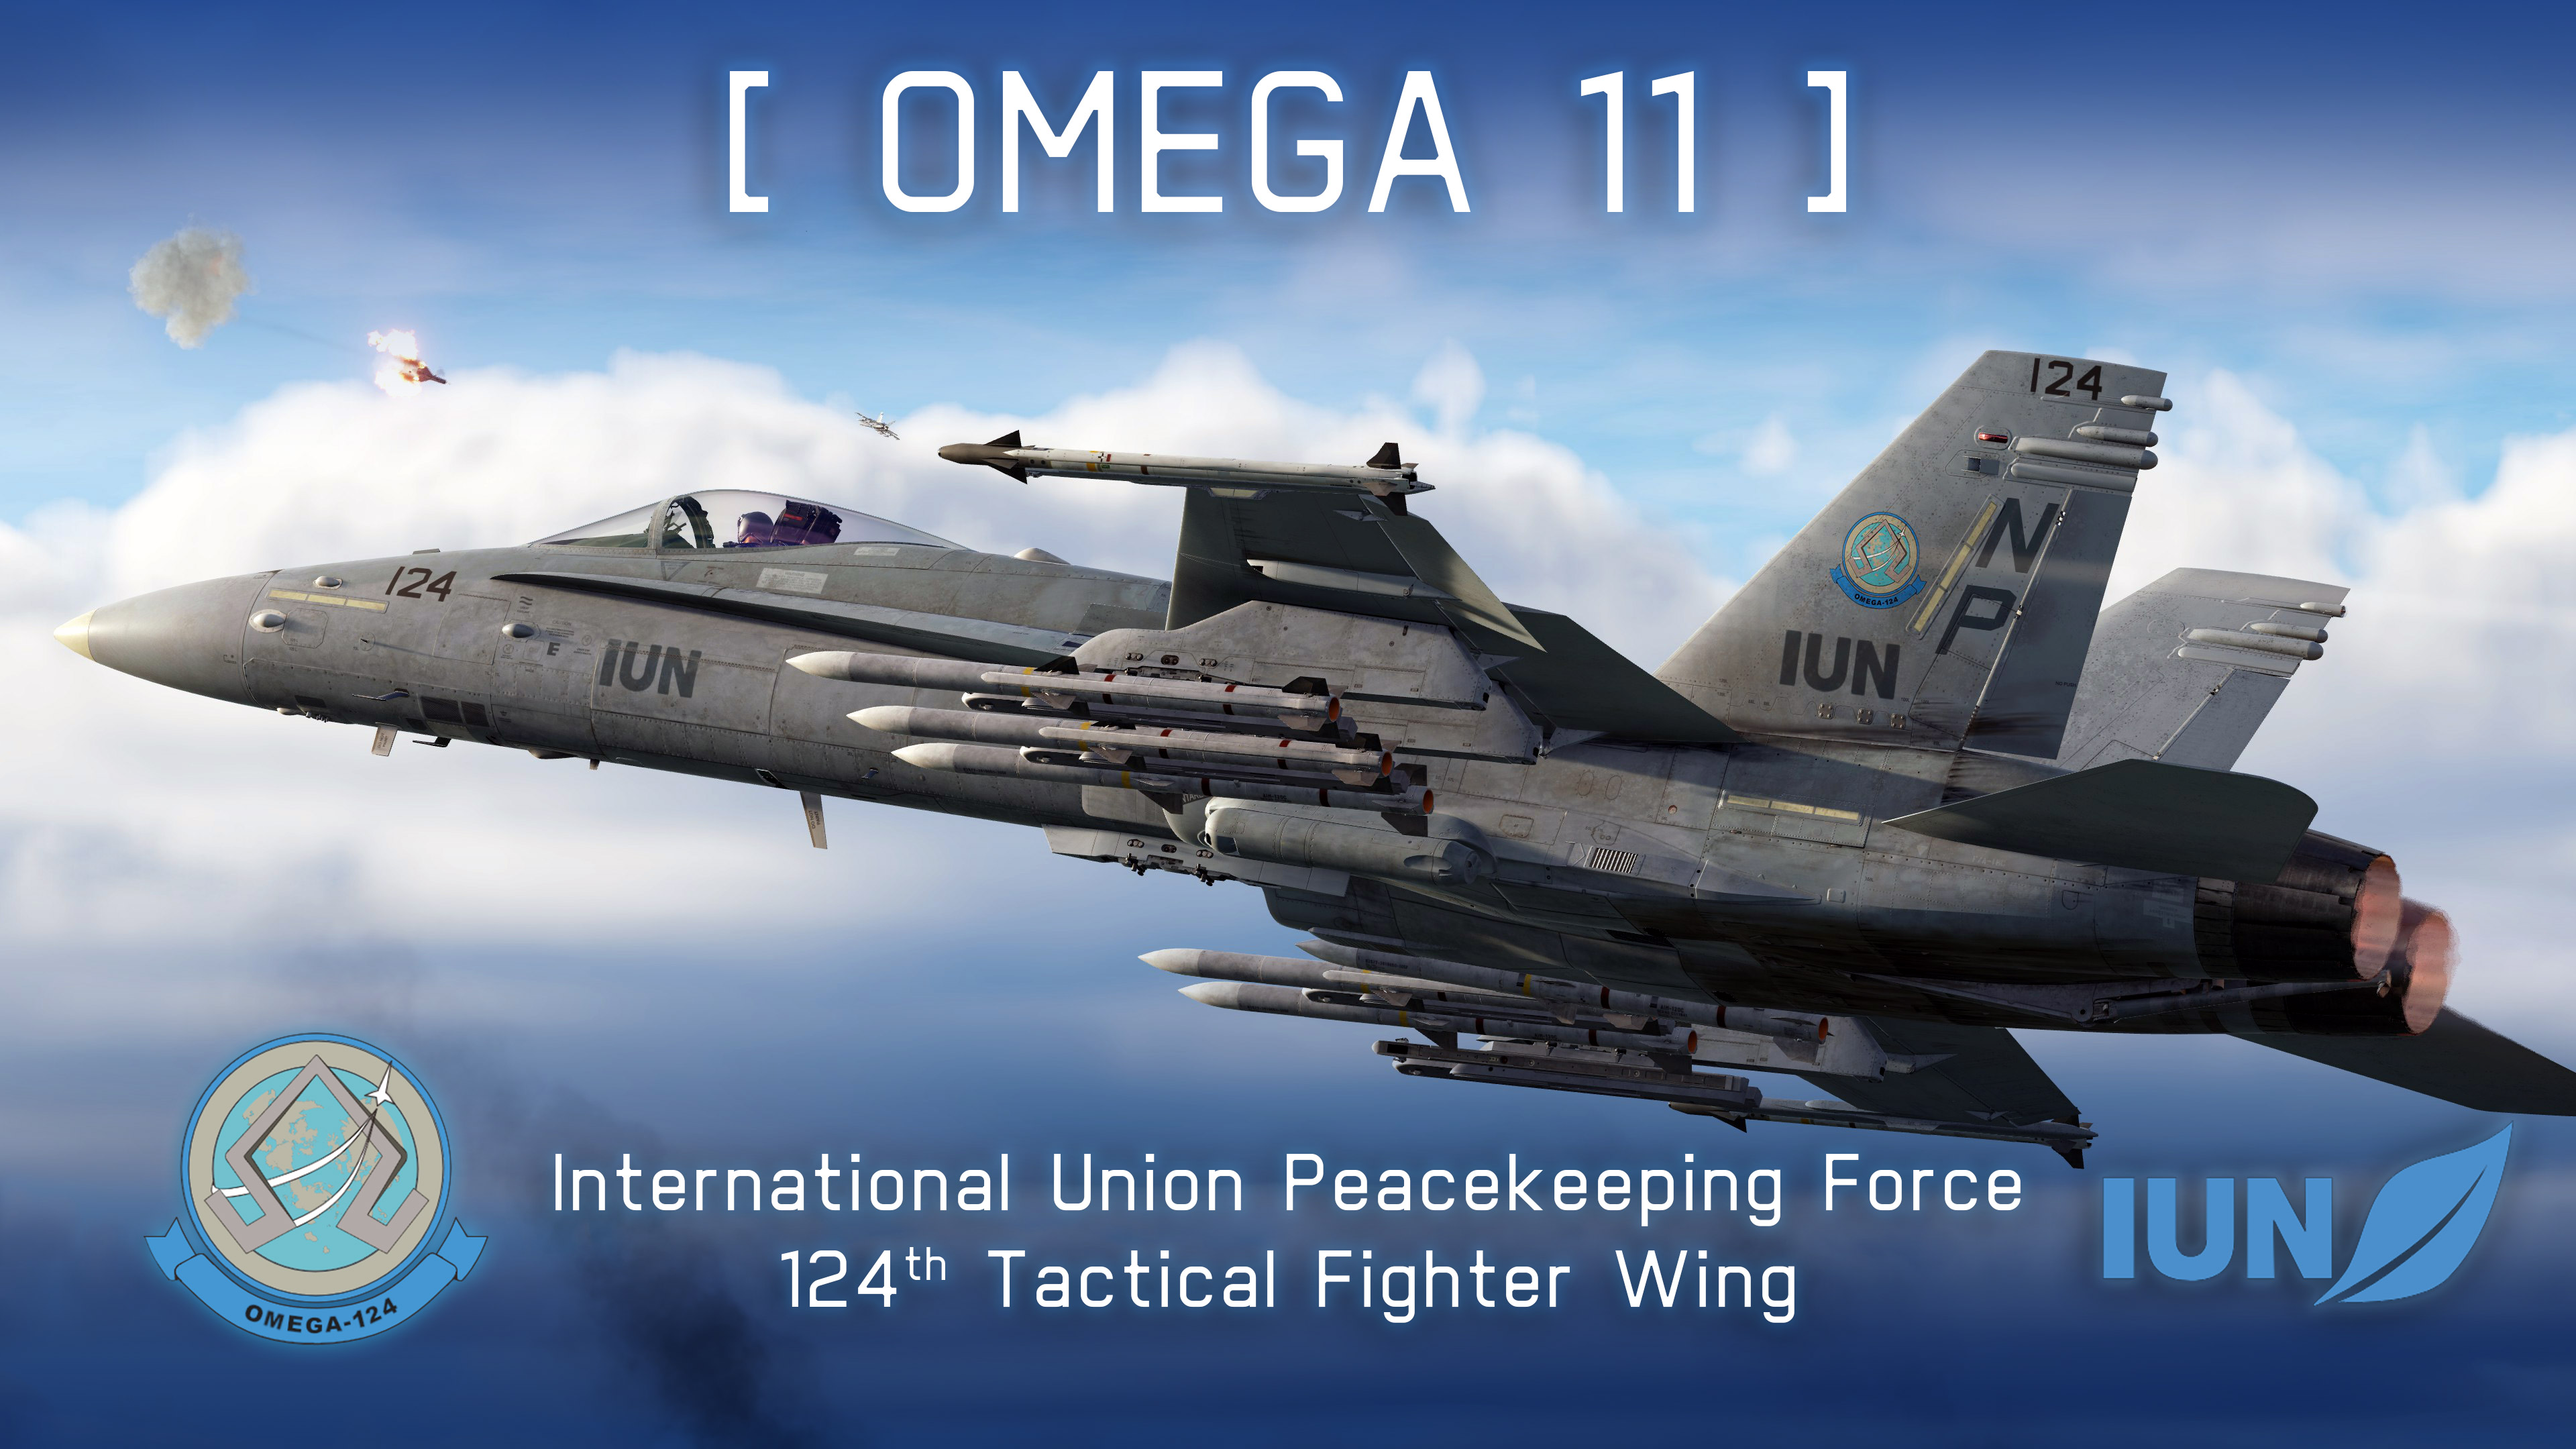 """Omega 11"", F/A-18C, 124th Tactical Fighter Wing, IUN-PKF (Ace Combat 7)"